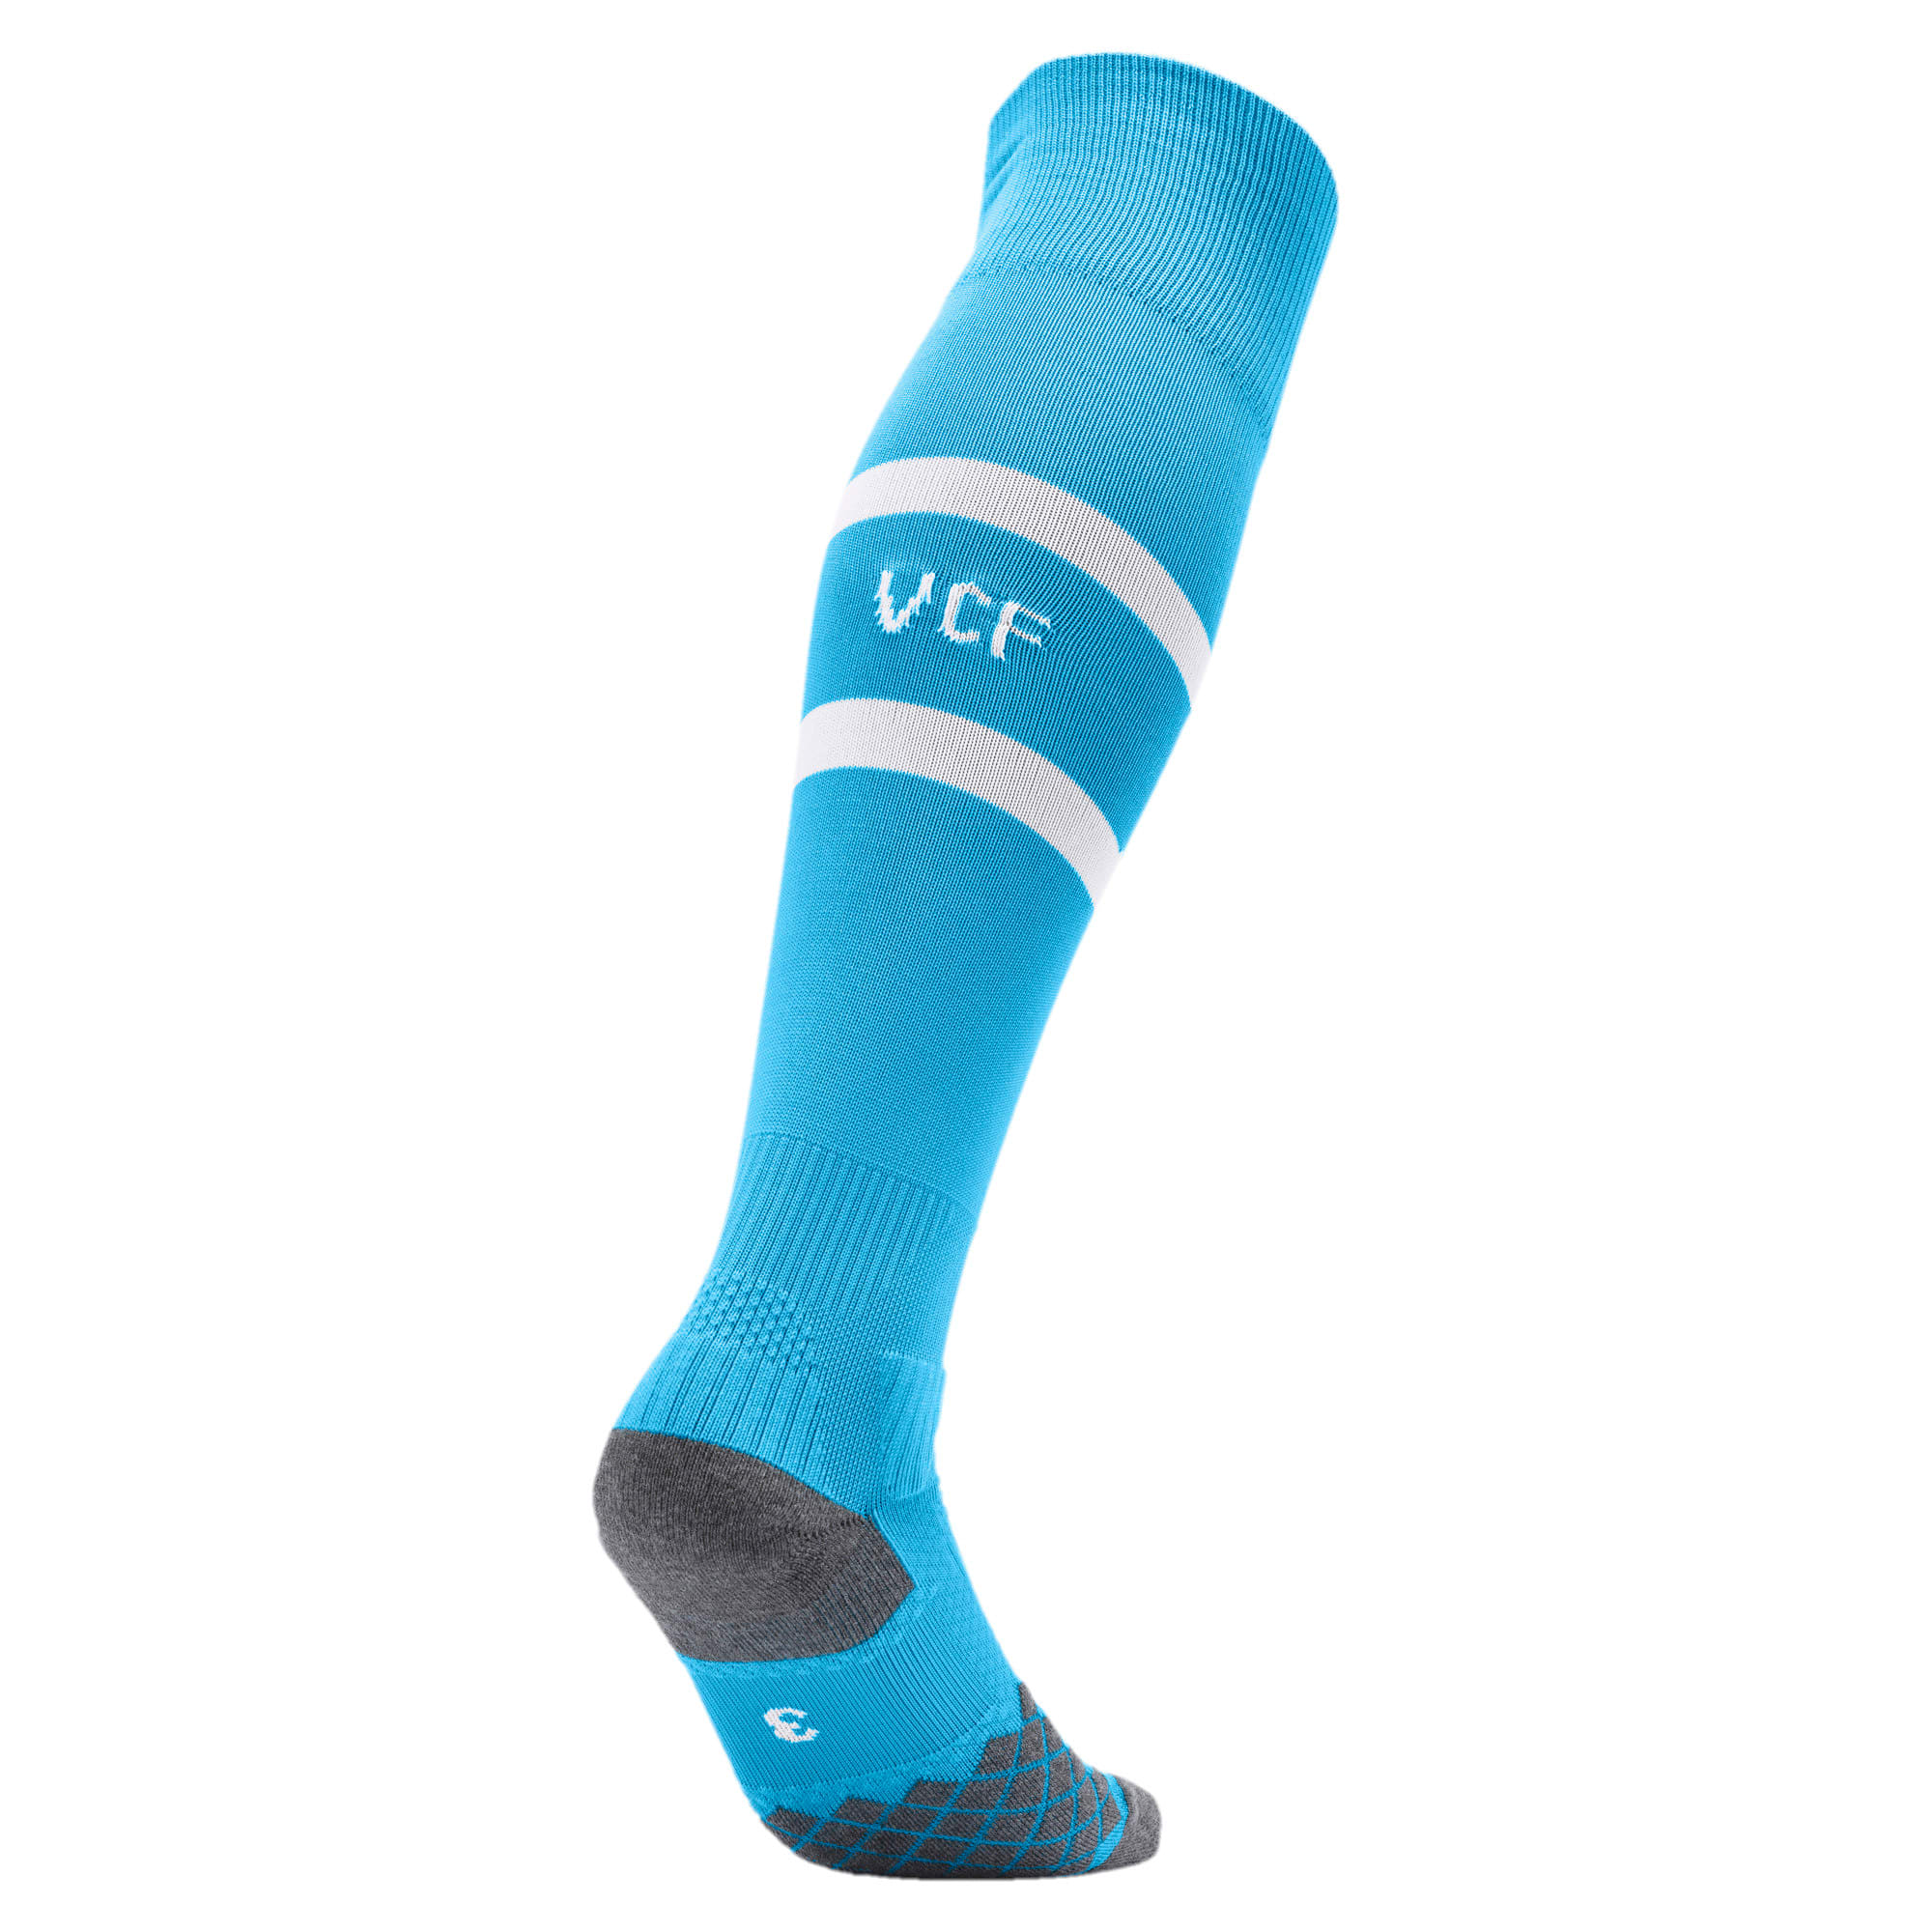 Thumbnail 2 of Valencia CF Herren Band Socken, Bleu Azur-Puma White, medium